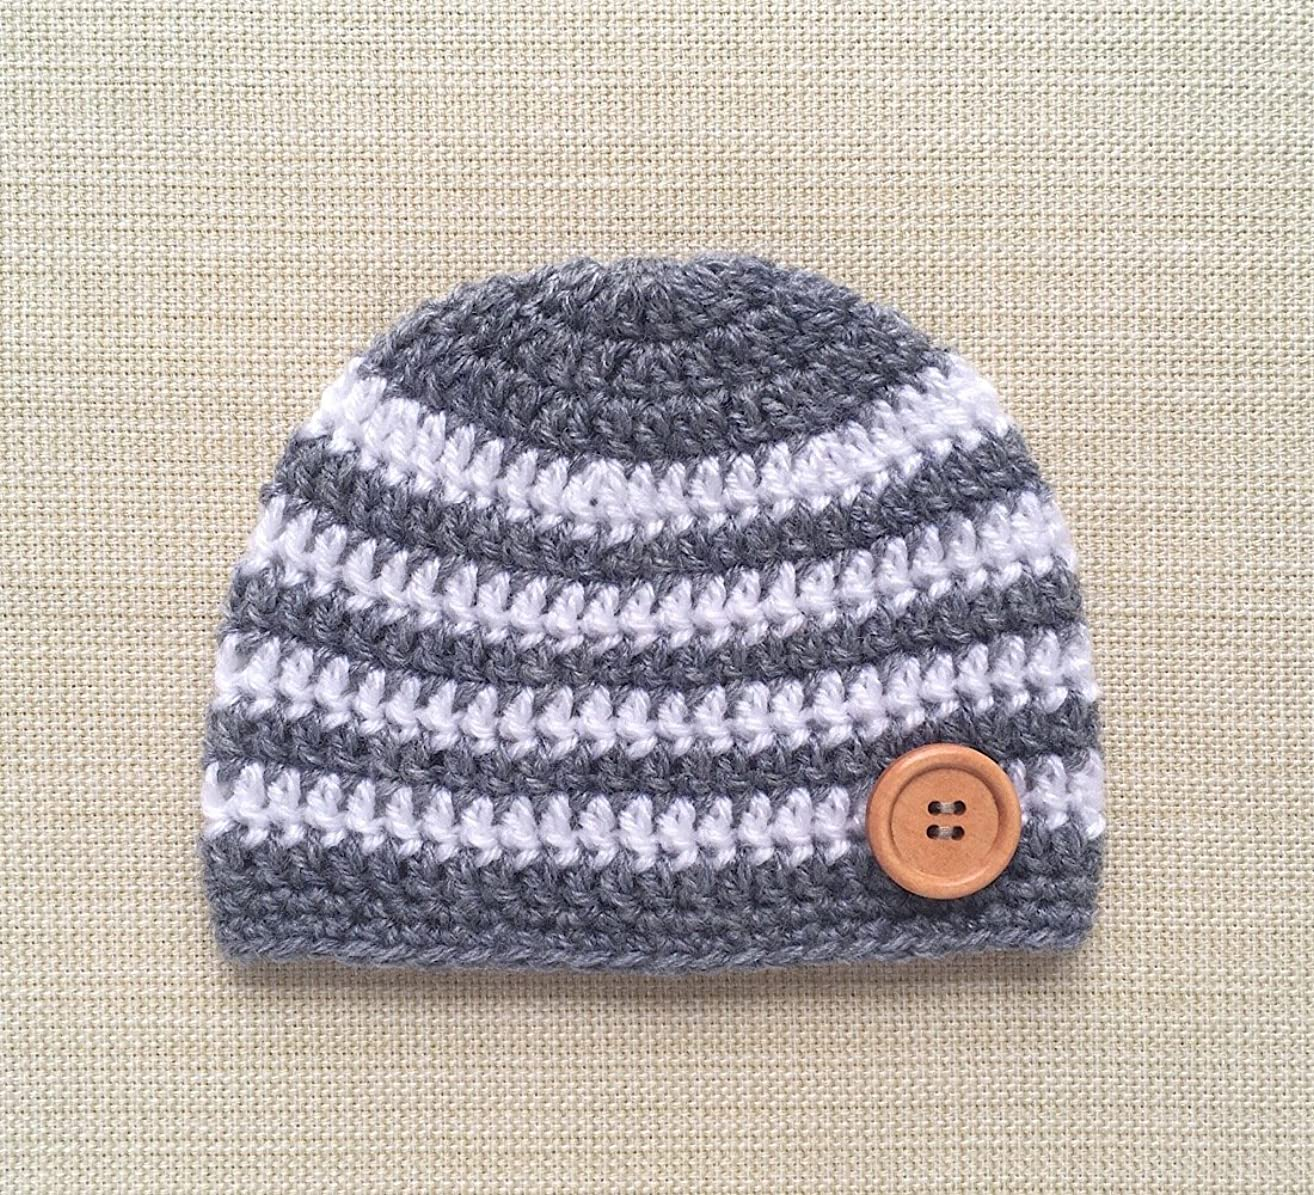 0-6 Month Crochet Baby Hat Boy Hospital Newborn Beanie For Pictures Gray White Striped Infant Cap